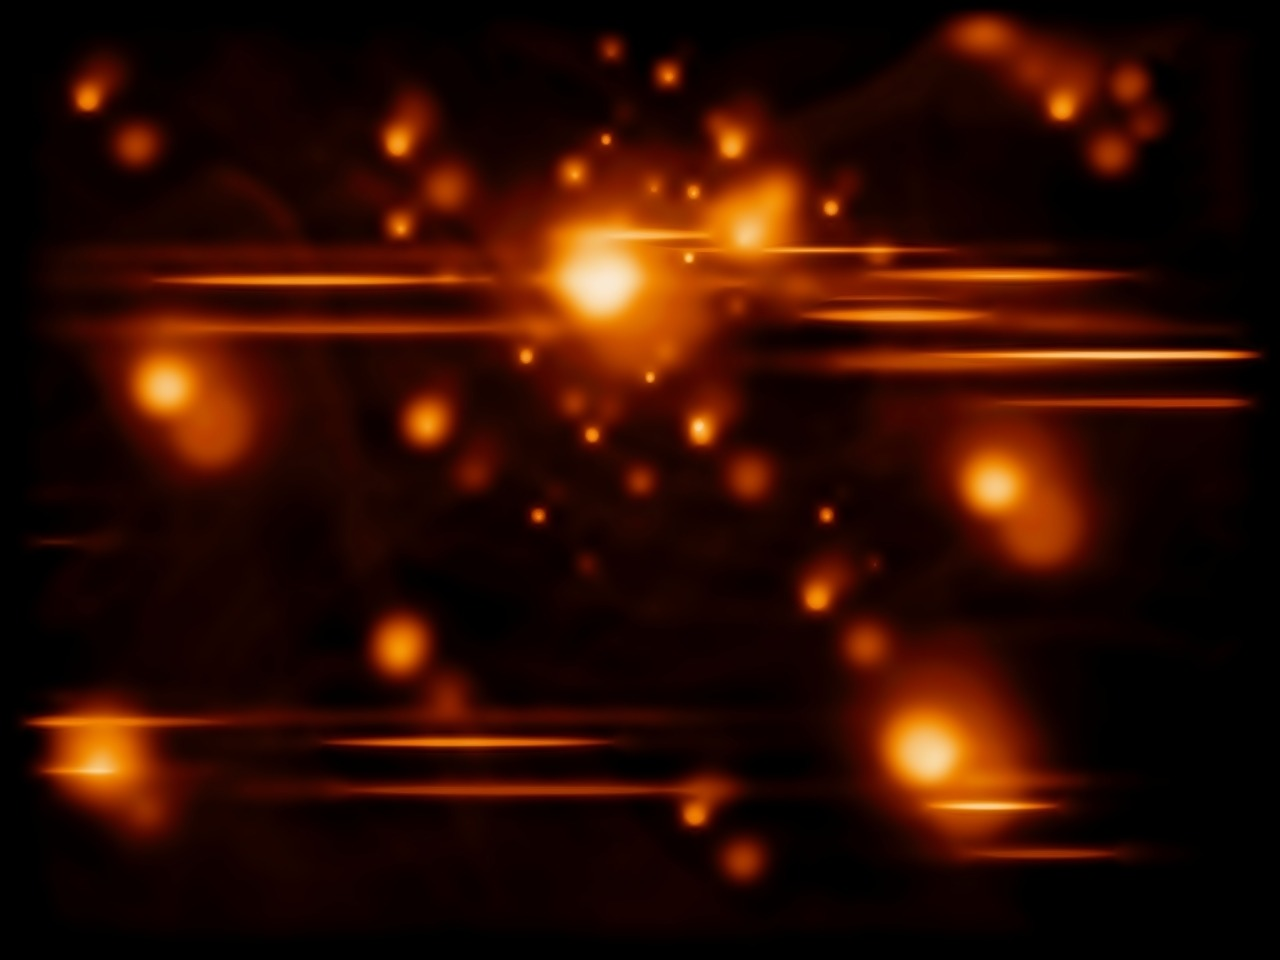 apache spark will dominate the big data landscape by 2022 wikibon